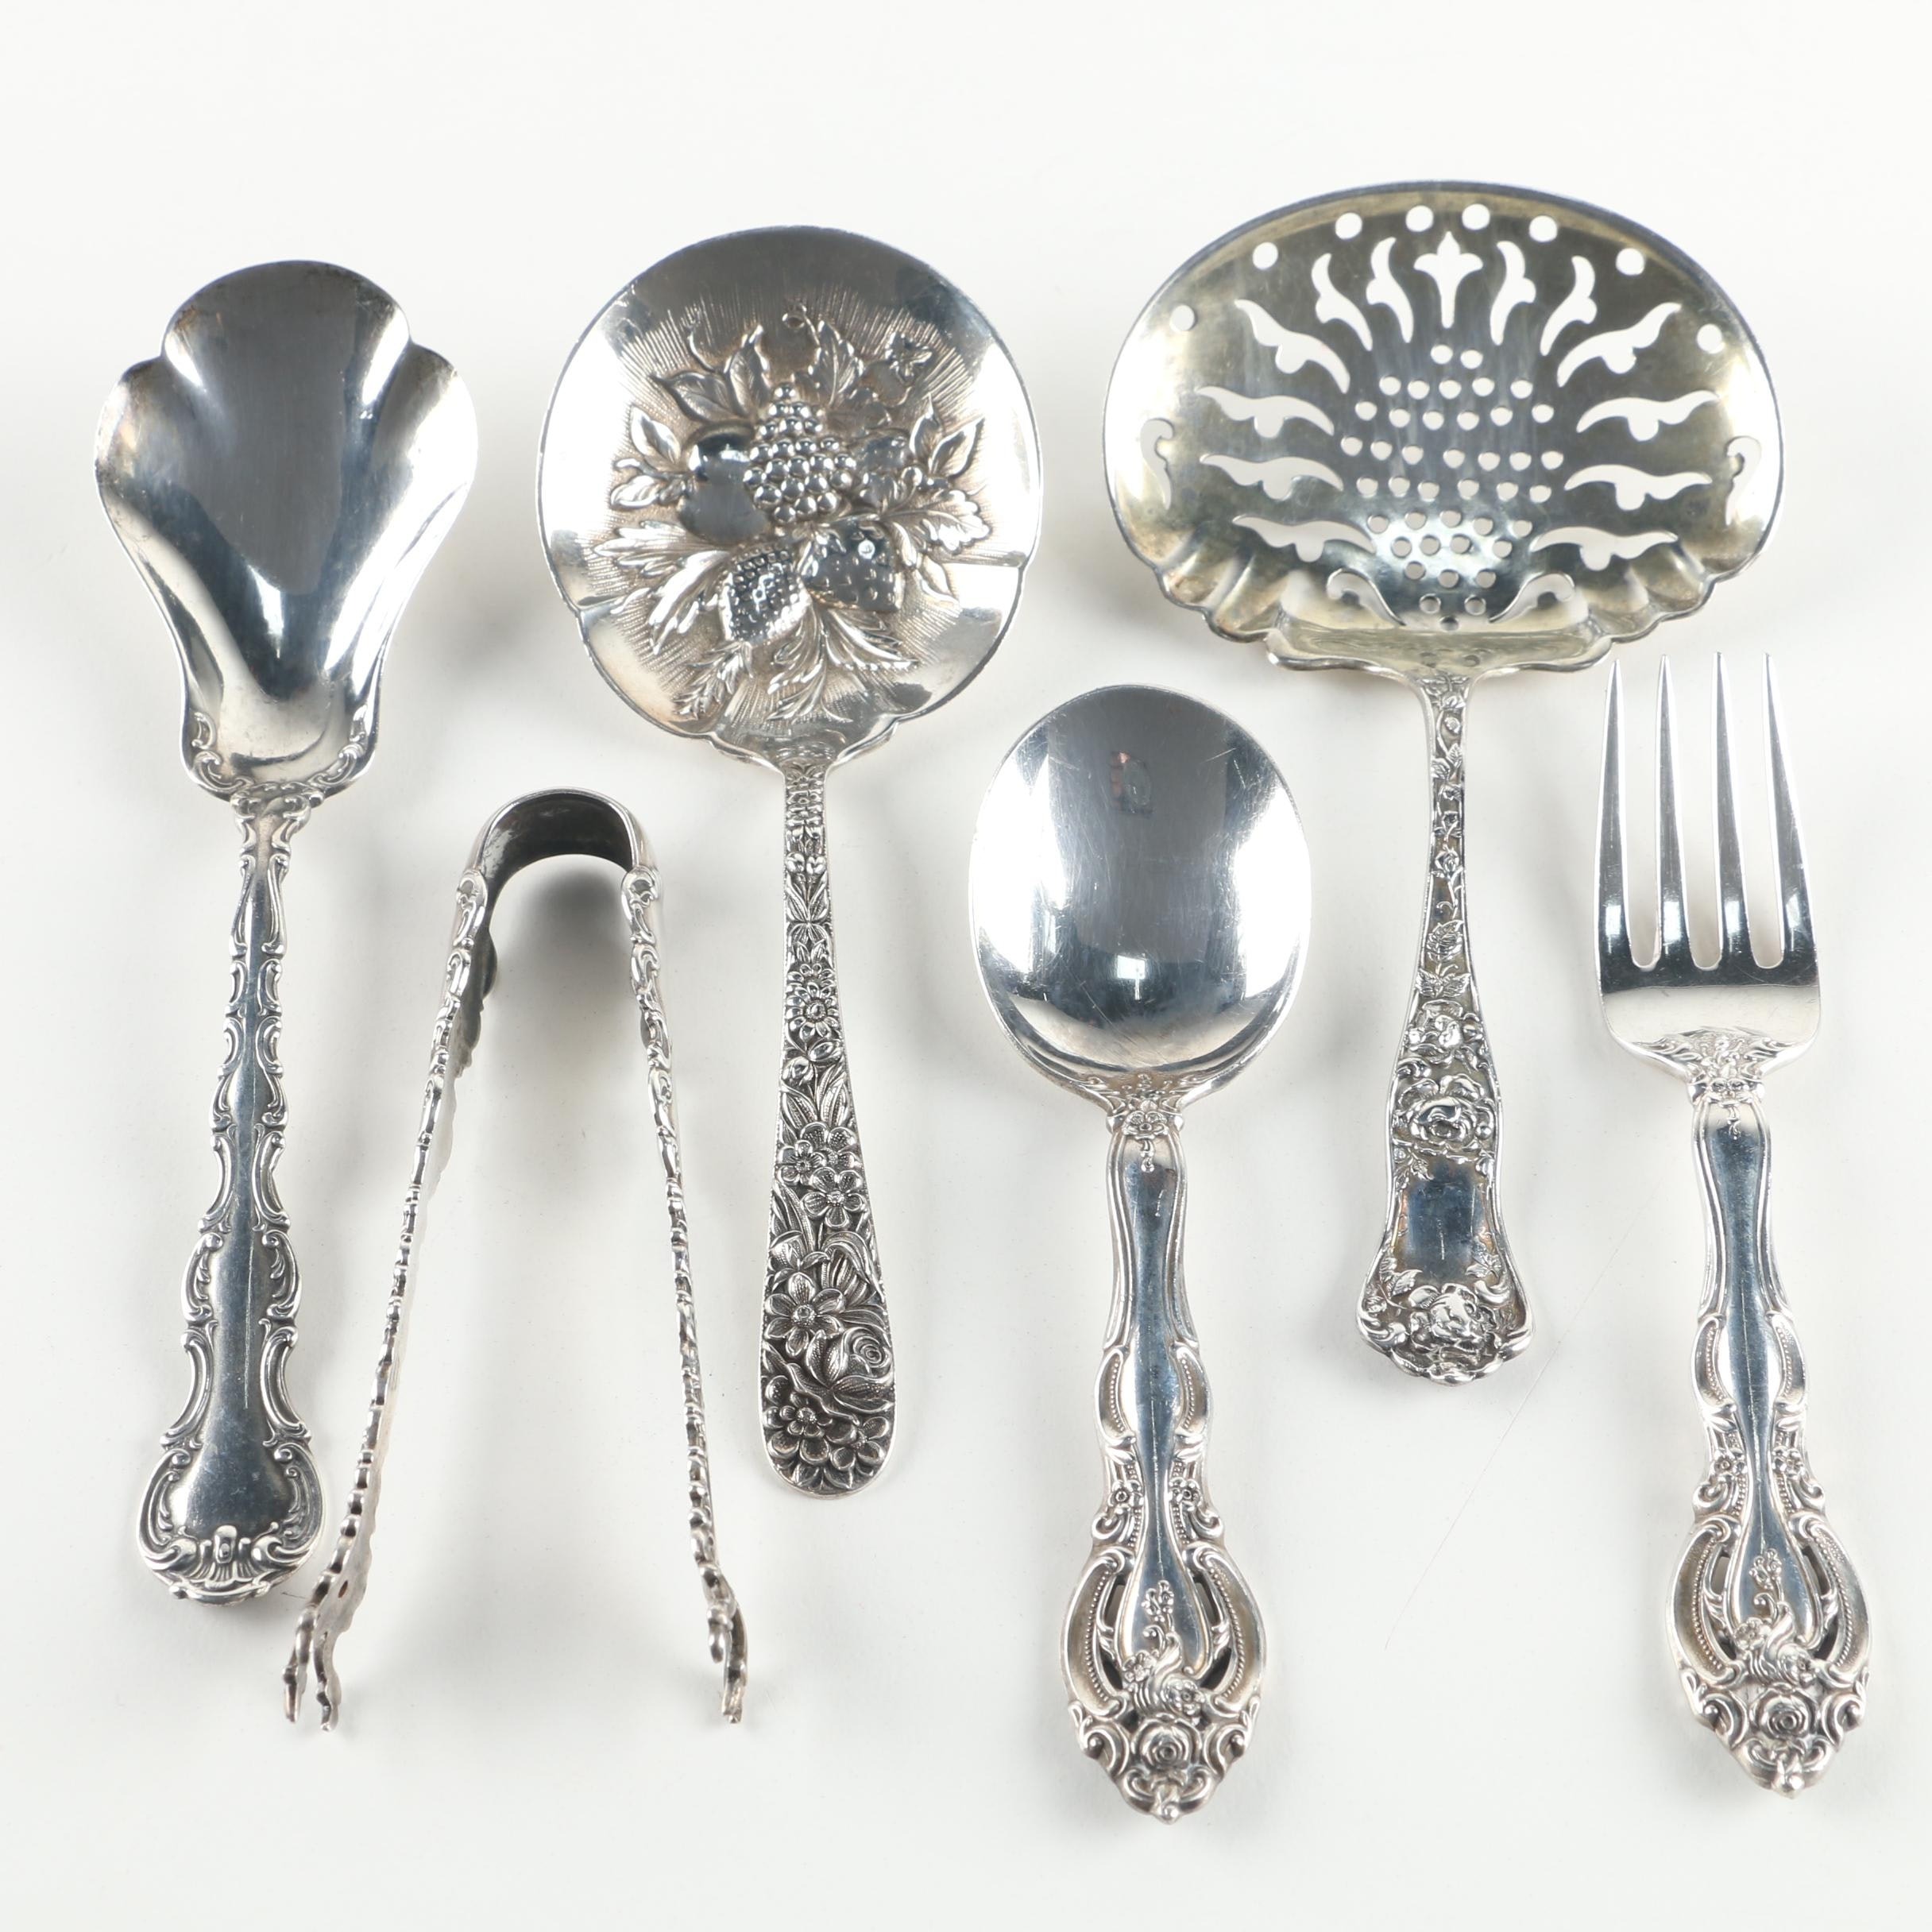 S. Kirk & Son Berry Spoon with Other Sterling Flatware and Serving Utensils